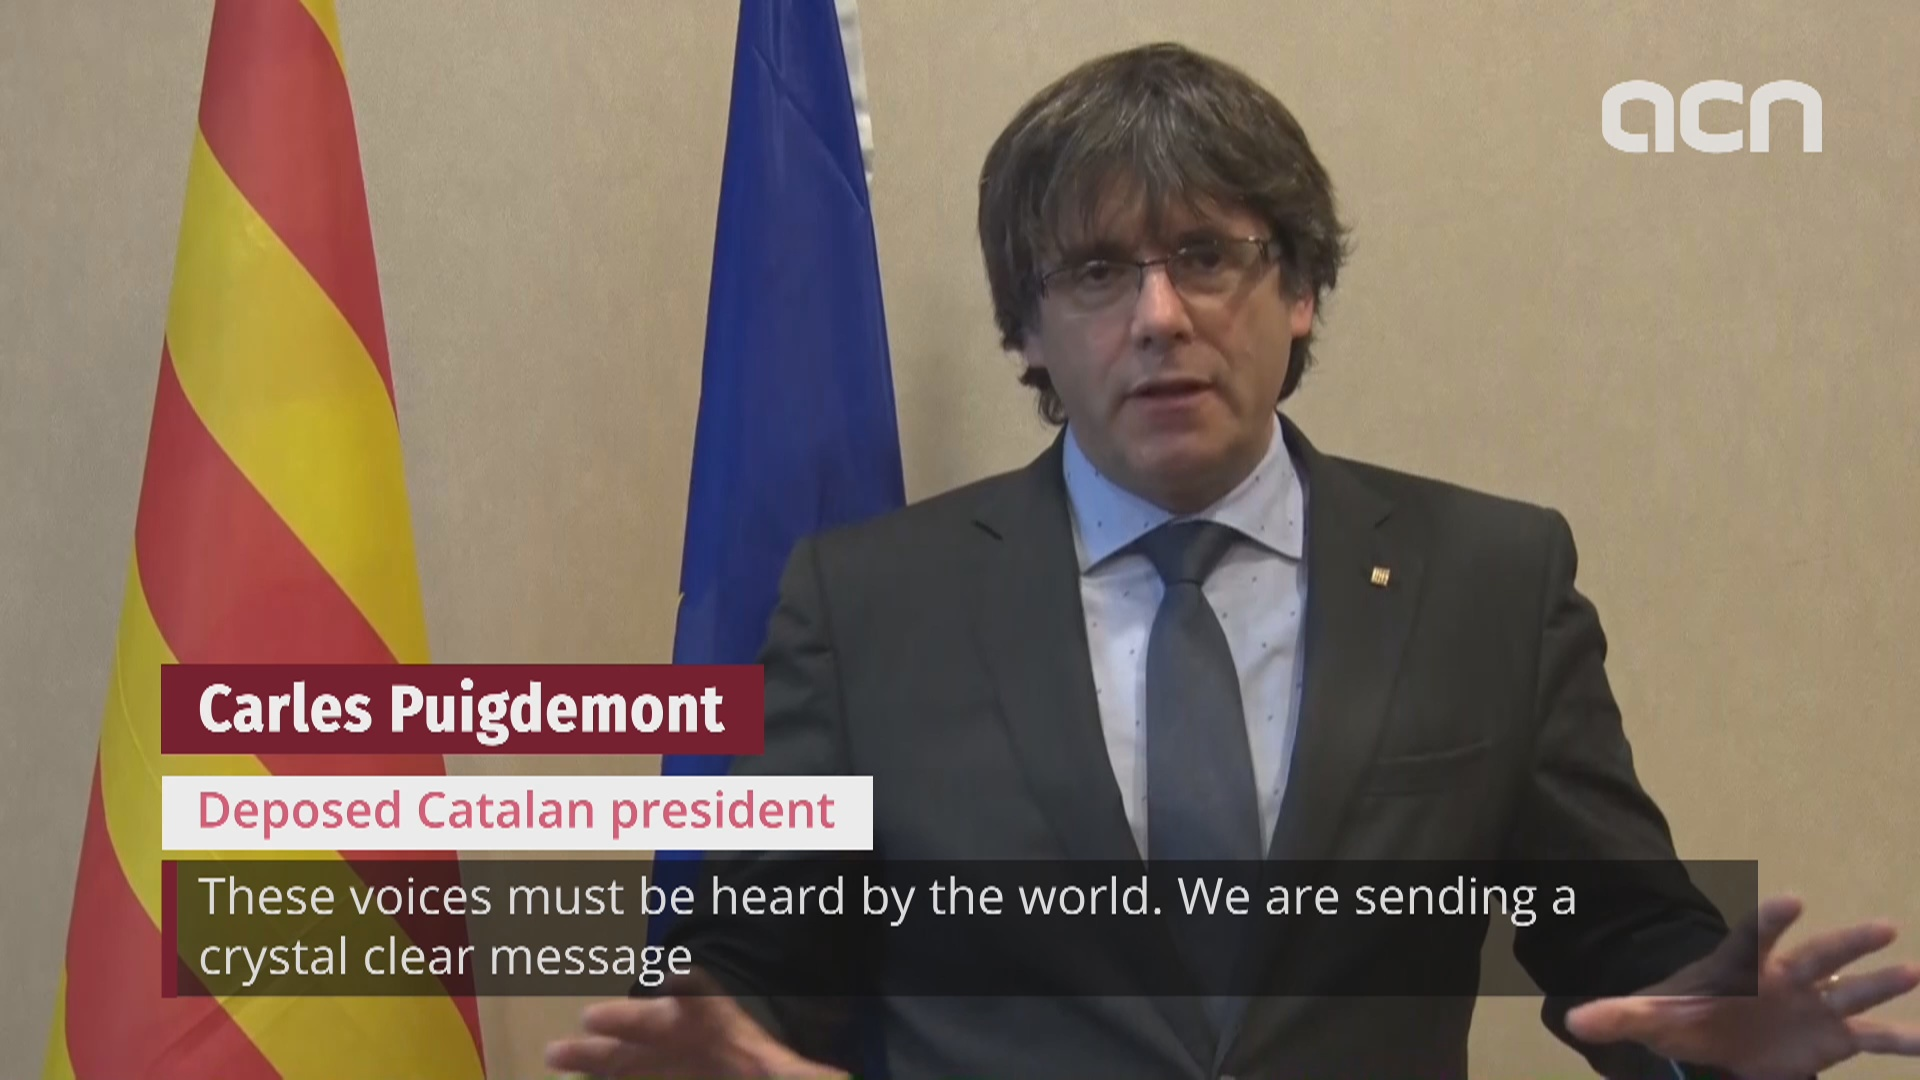 President calls for 'loud and clear' message from Catalan public